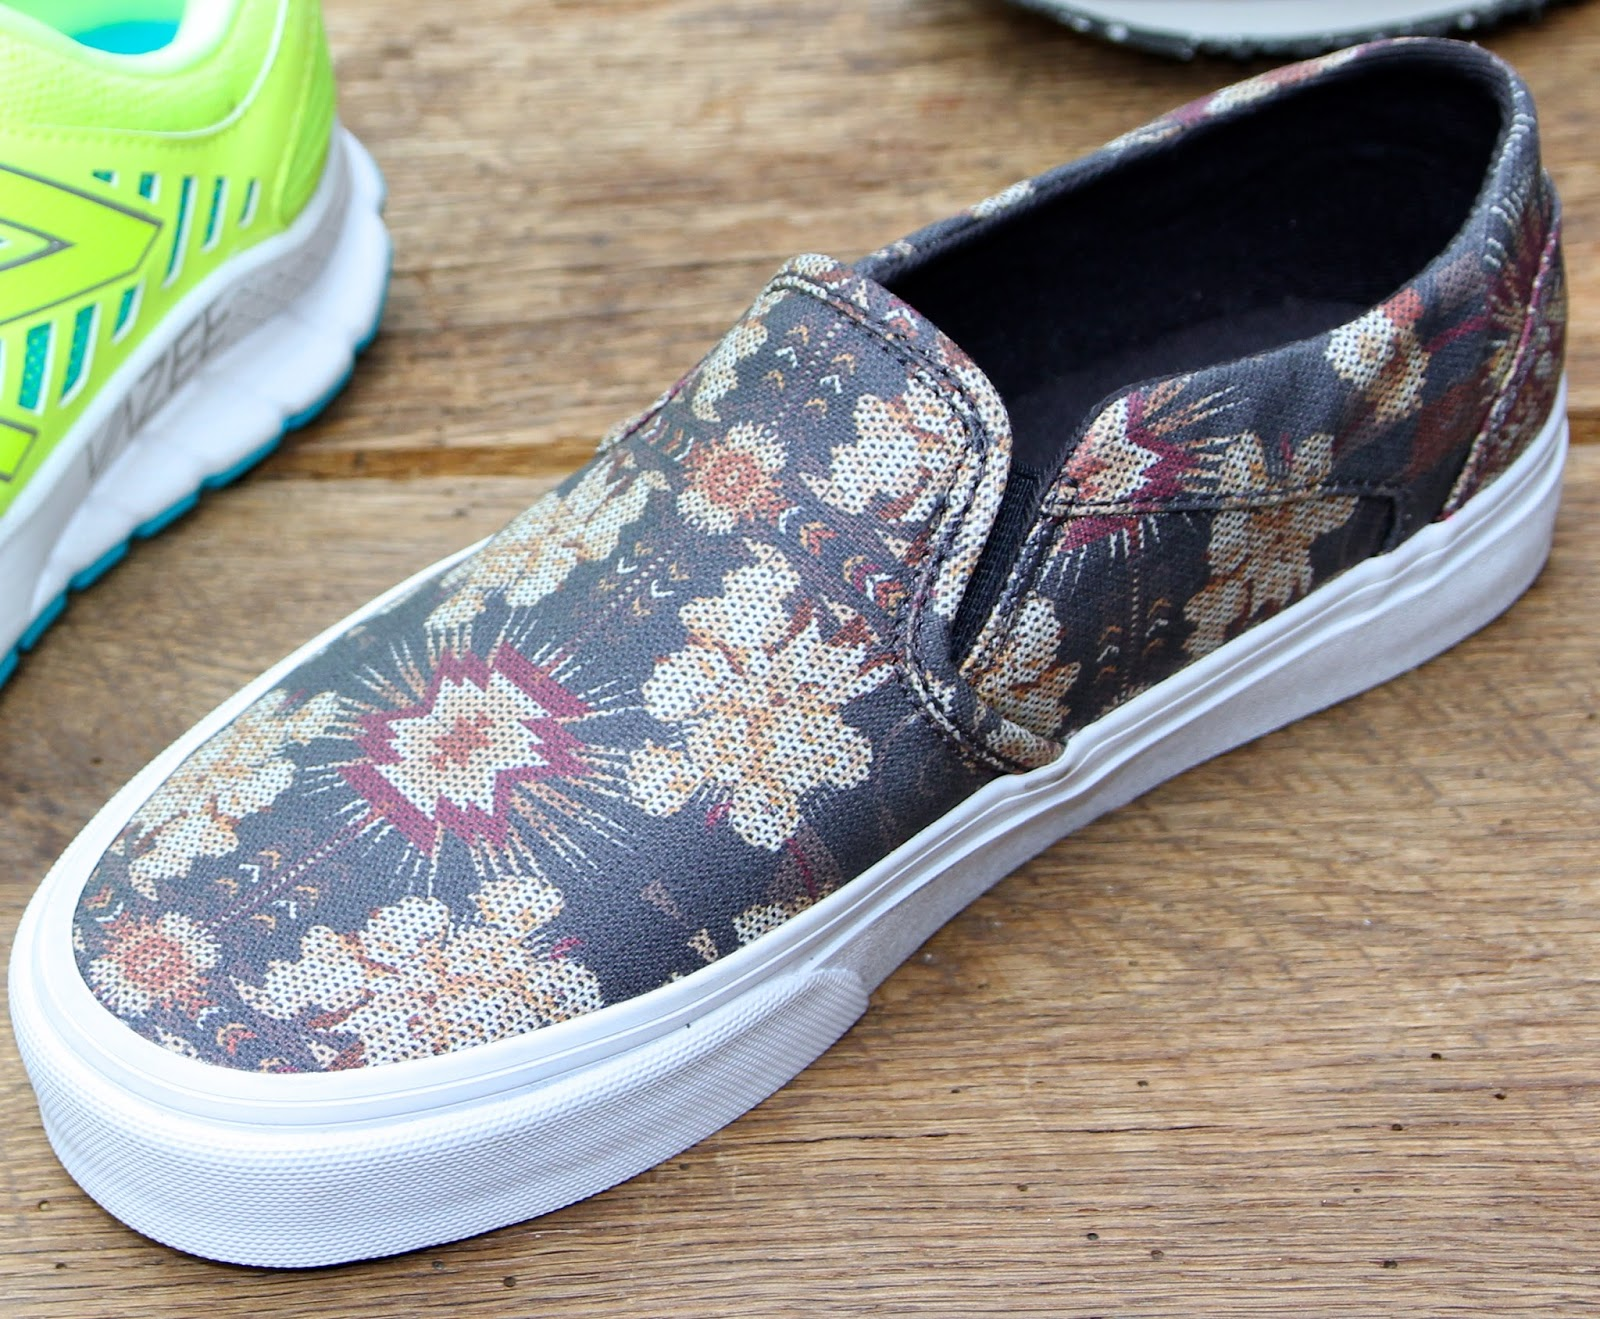 1fada816144 Vans Asher  49.95 DSW price slip-ons with white sneaker outsole get dark  floral uppers for Fall